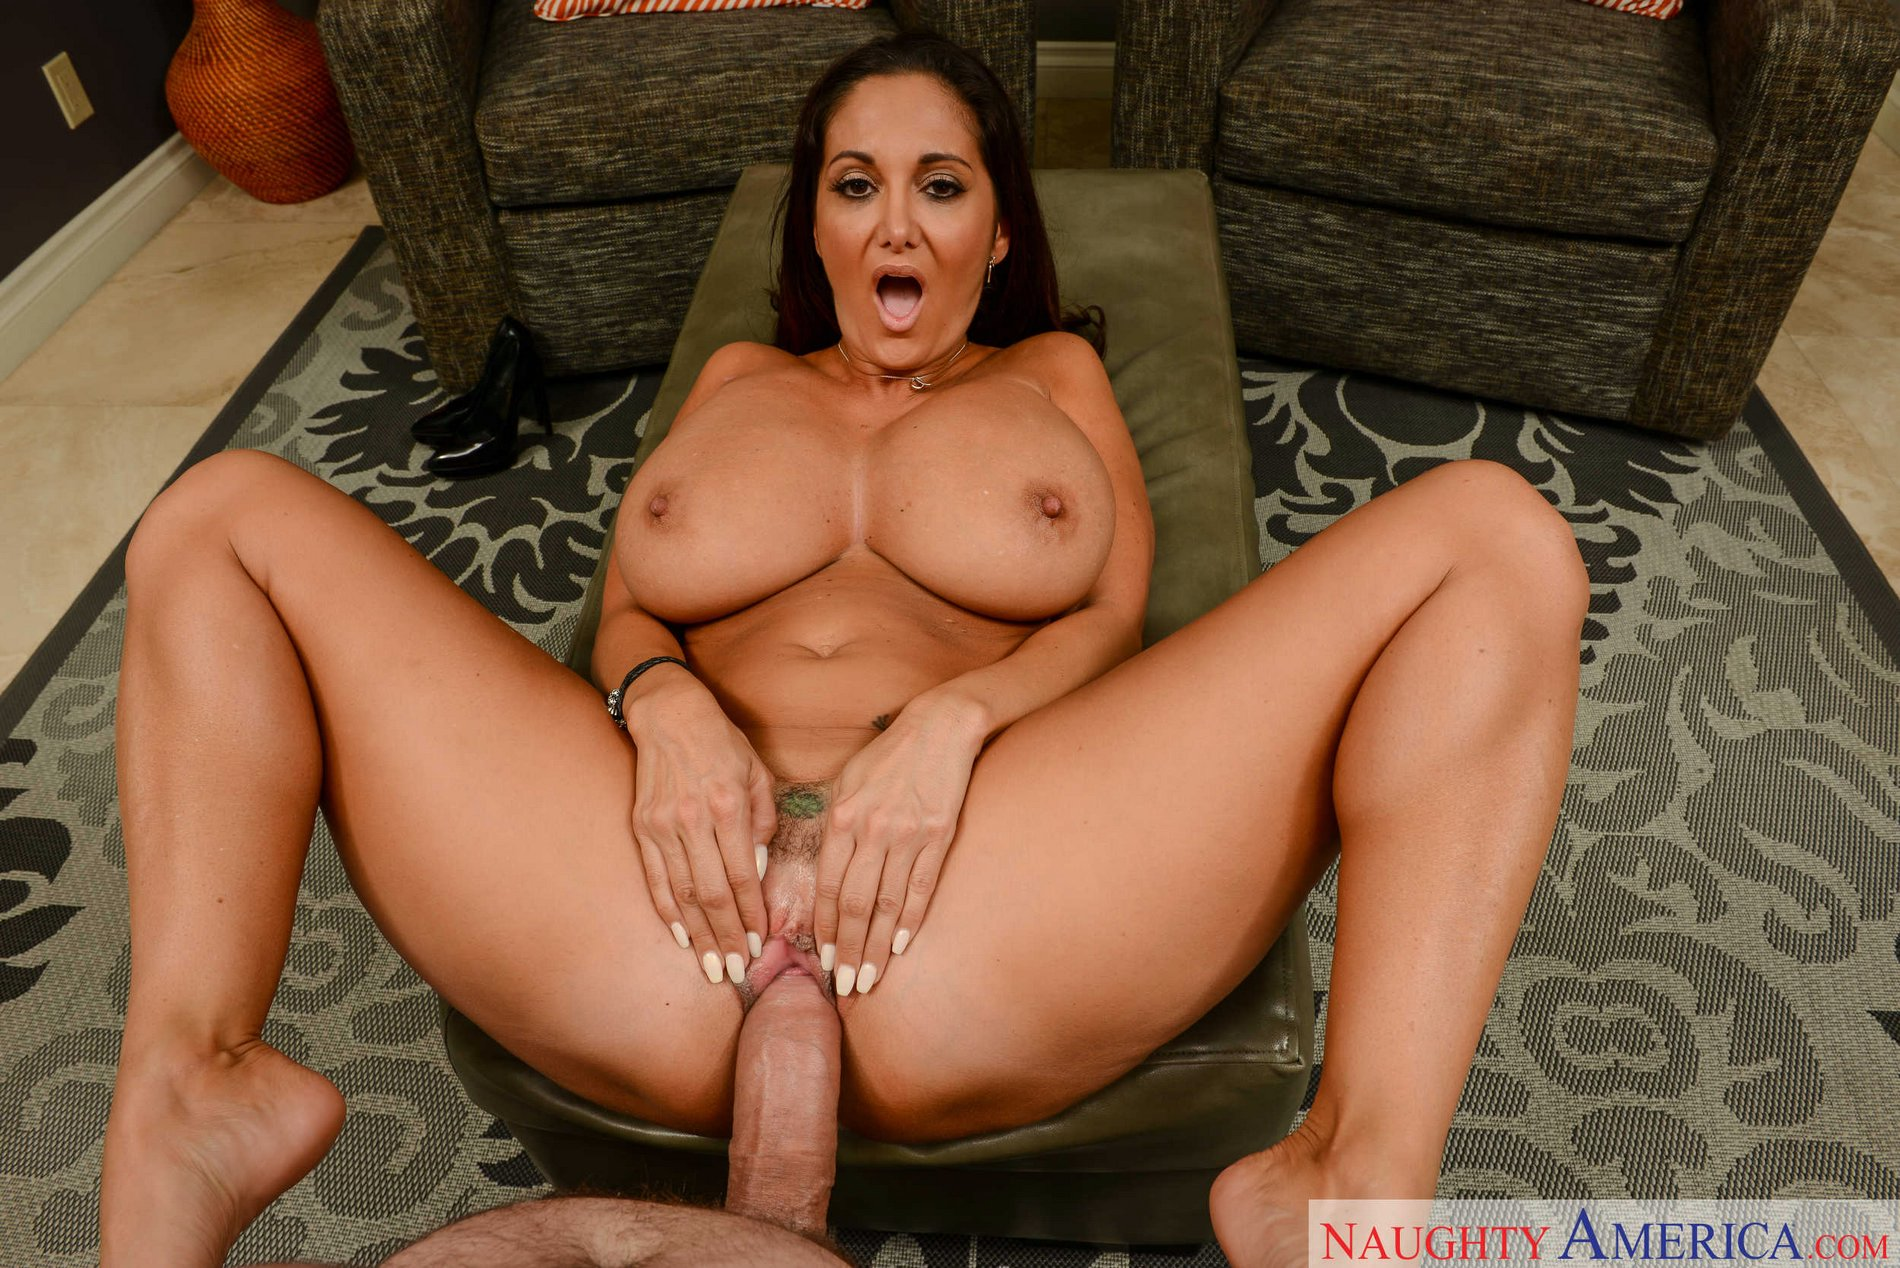 Ava addams pov cock riding amp cum swallow 2